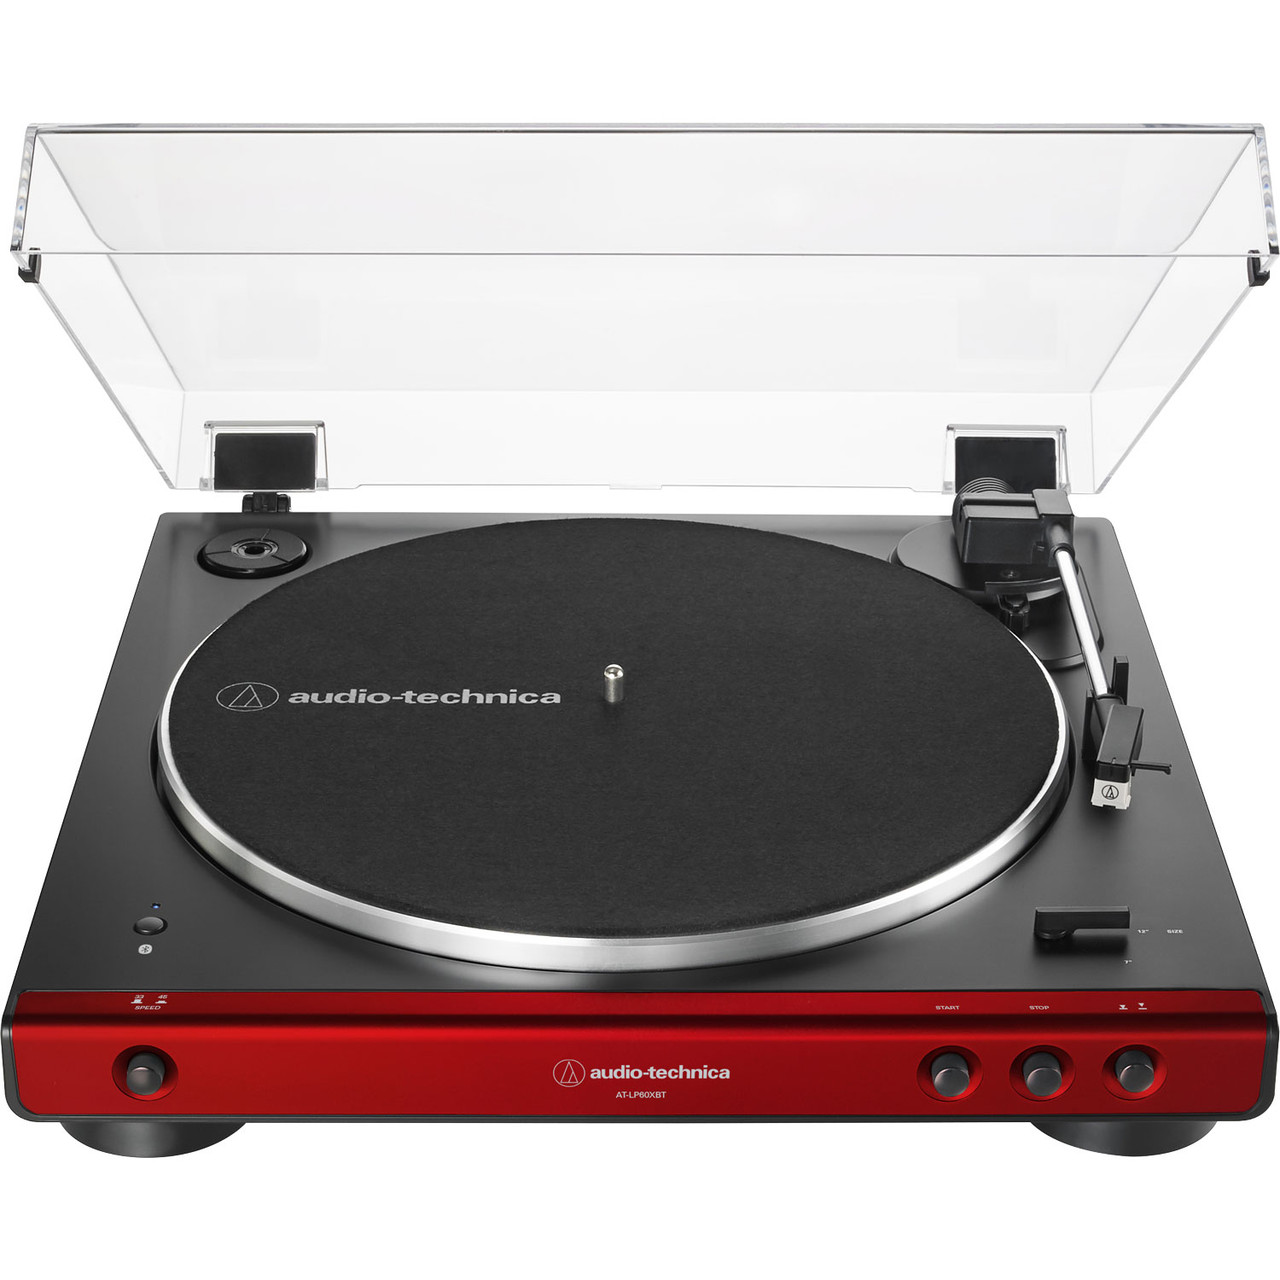 Audio-Technica AT-LP60XBT-RD Fully Automatic Belt-Drive Bluetooth Stereo Turntable, Red/Black